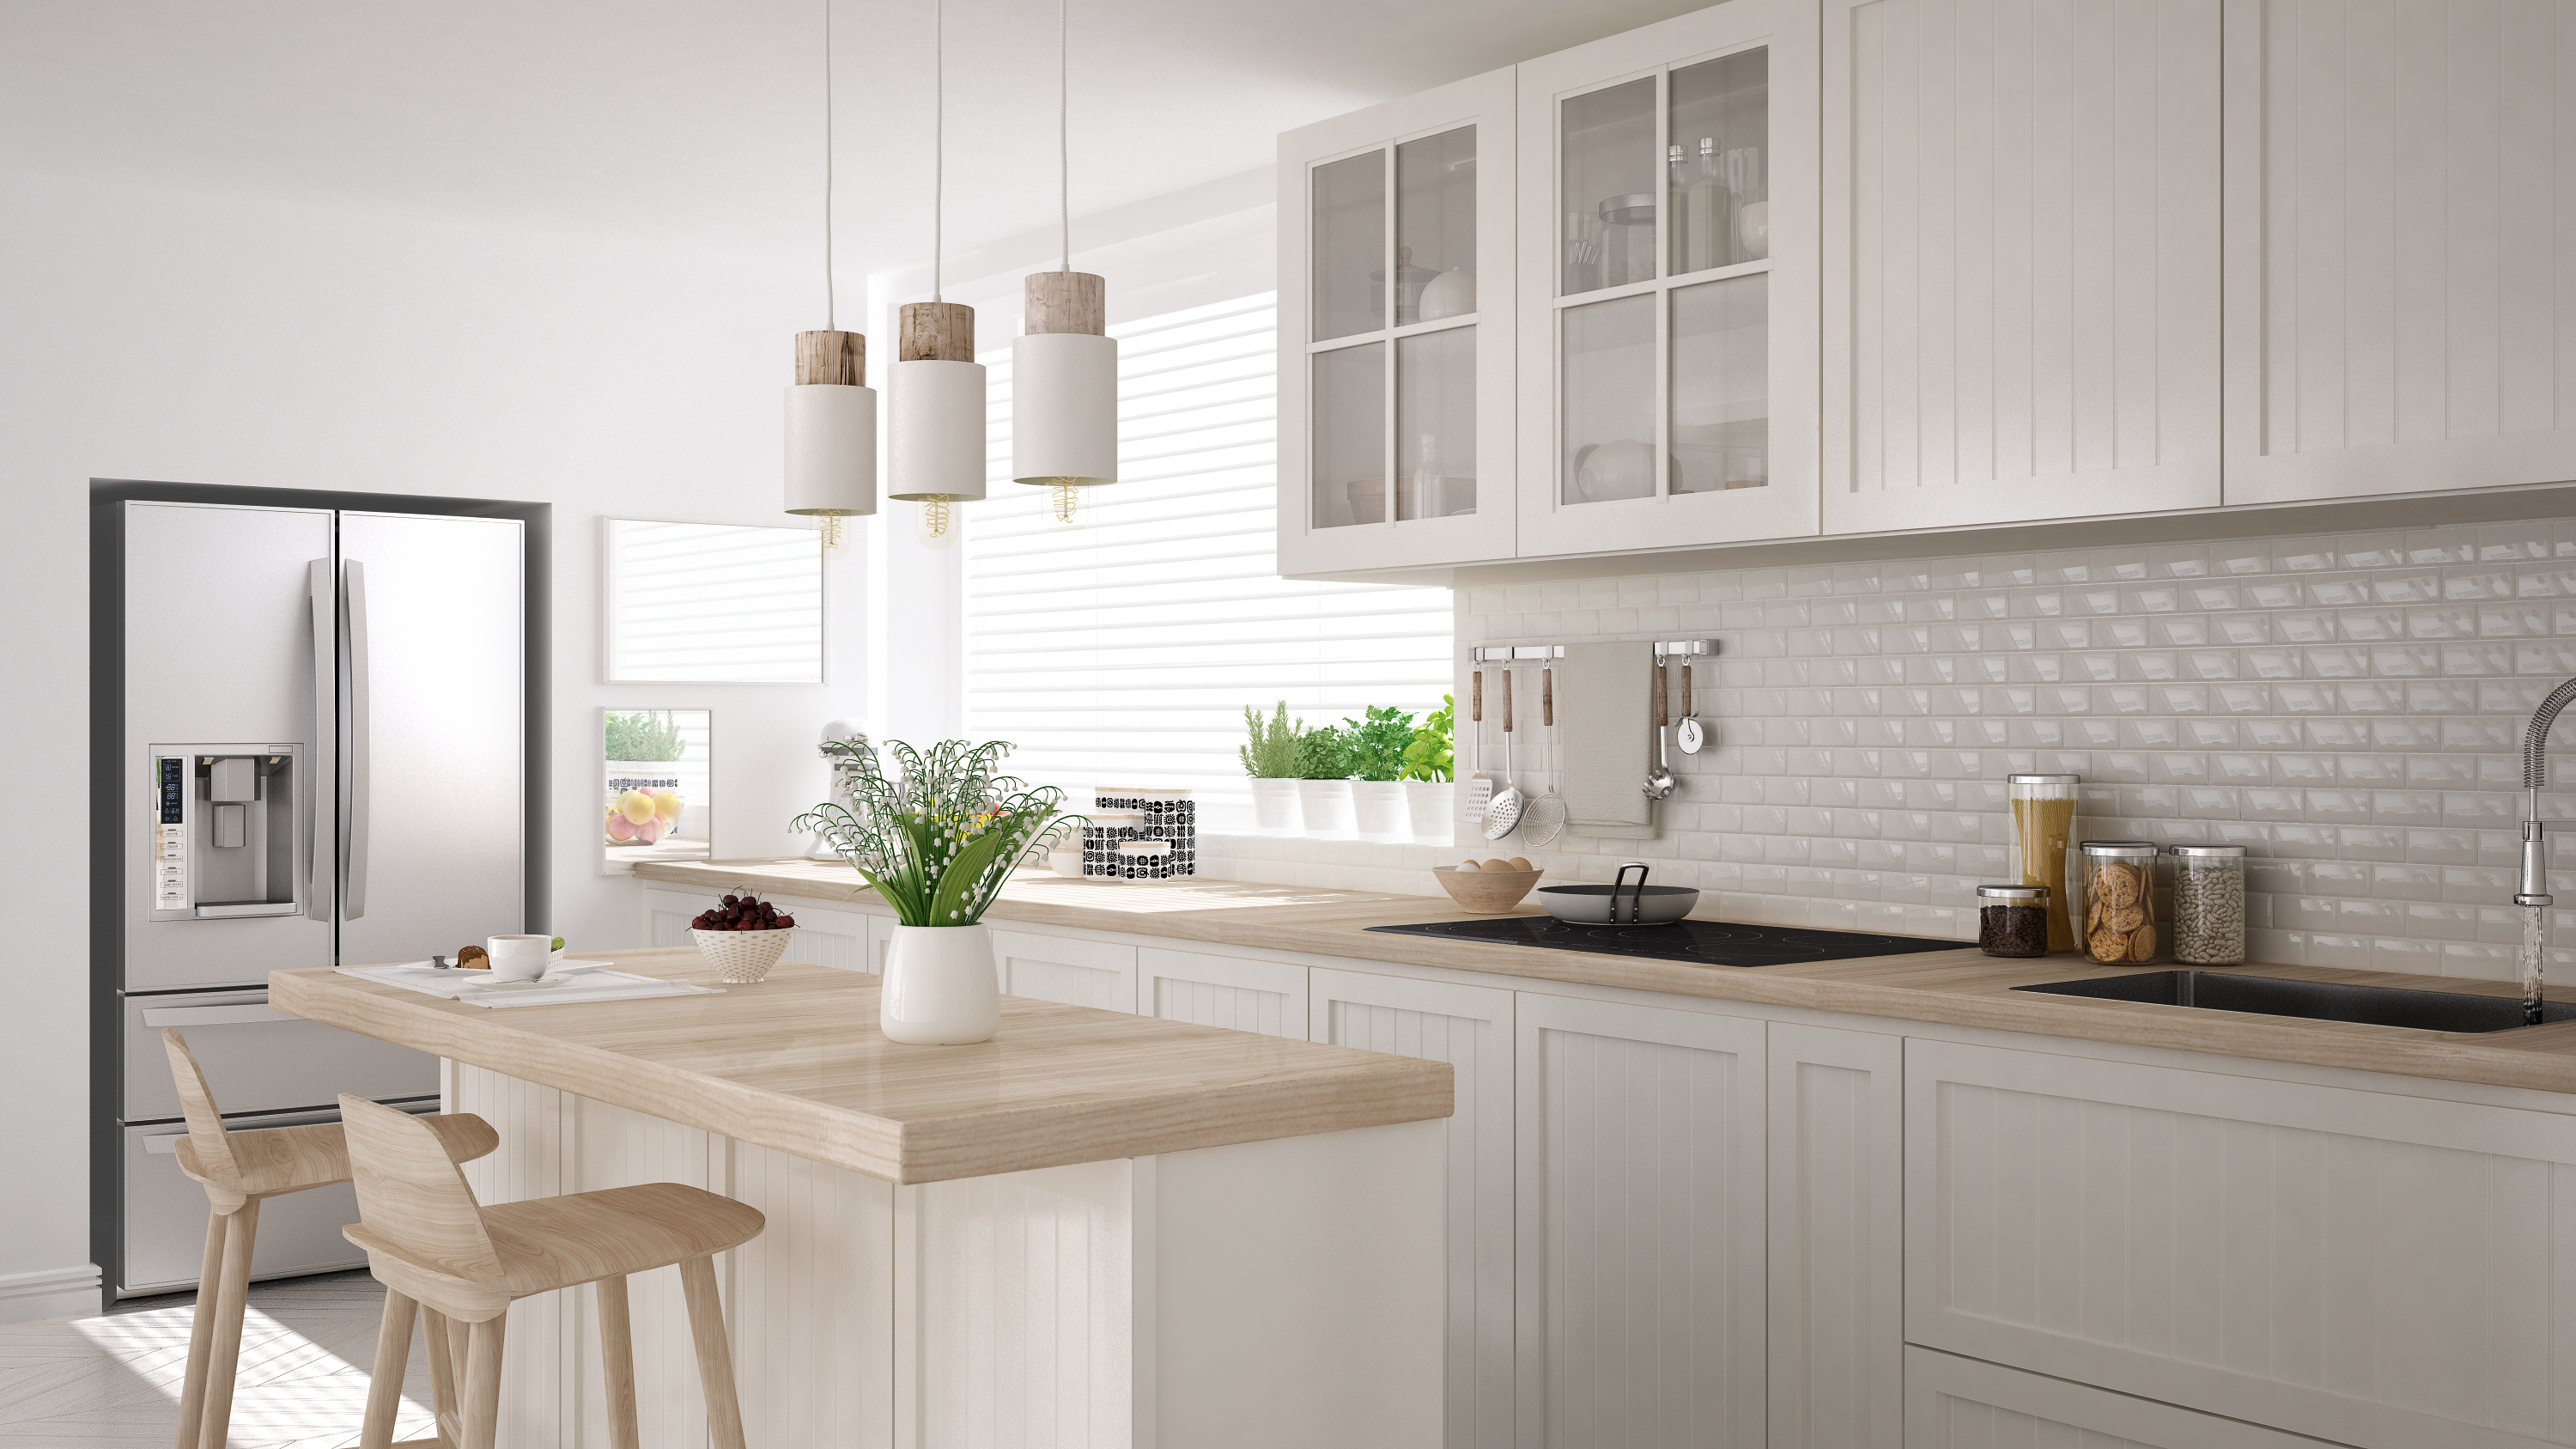 Scandinavian classic kitchen with wooden and white details, minimalistic interior design team logue